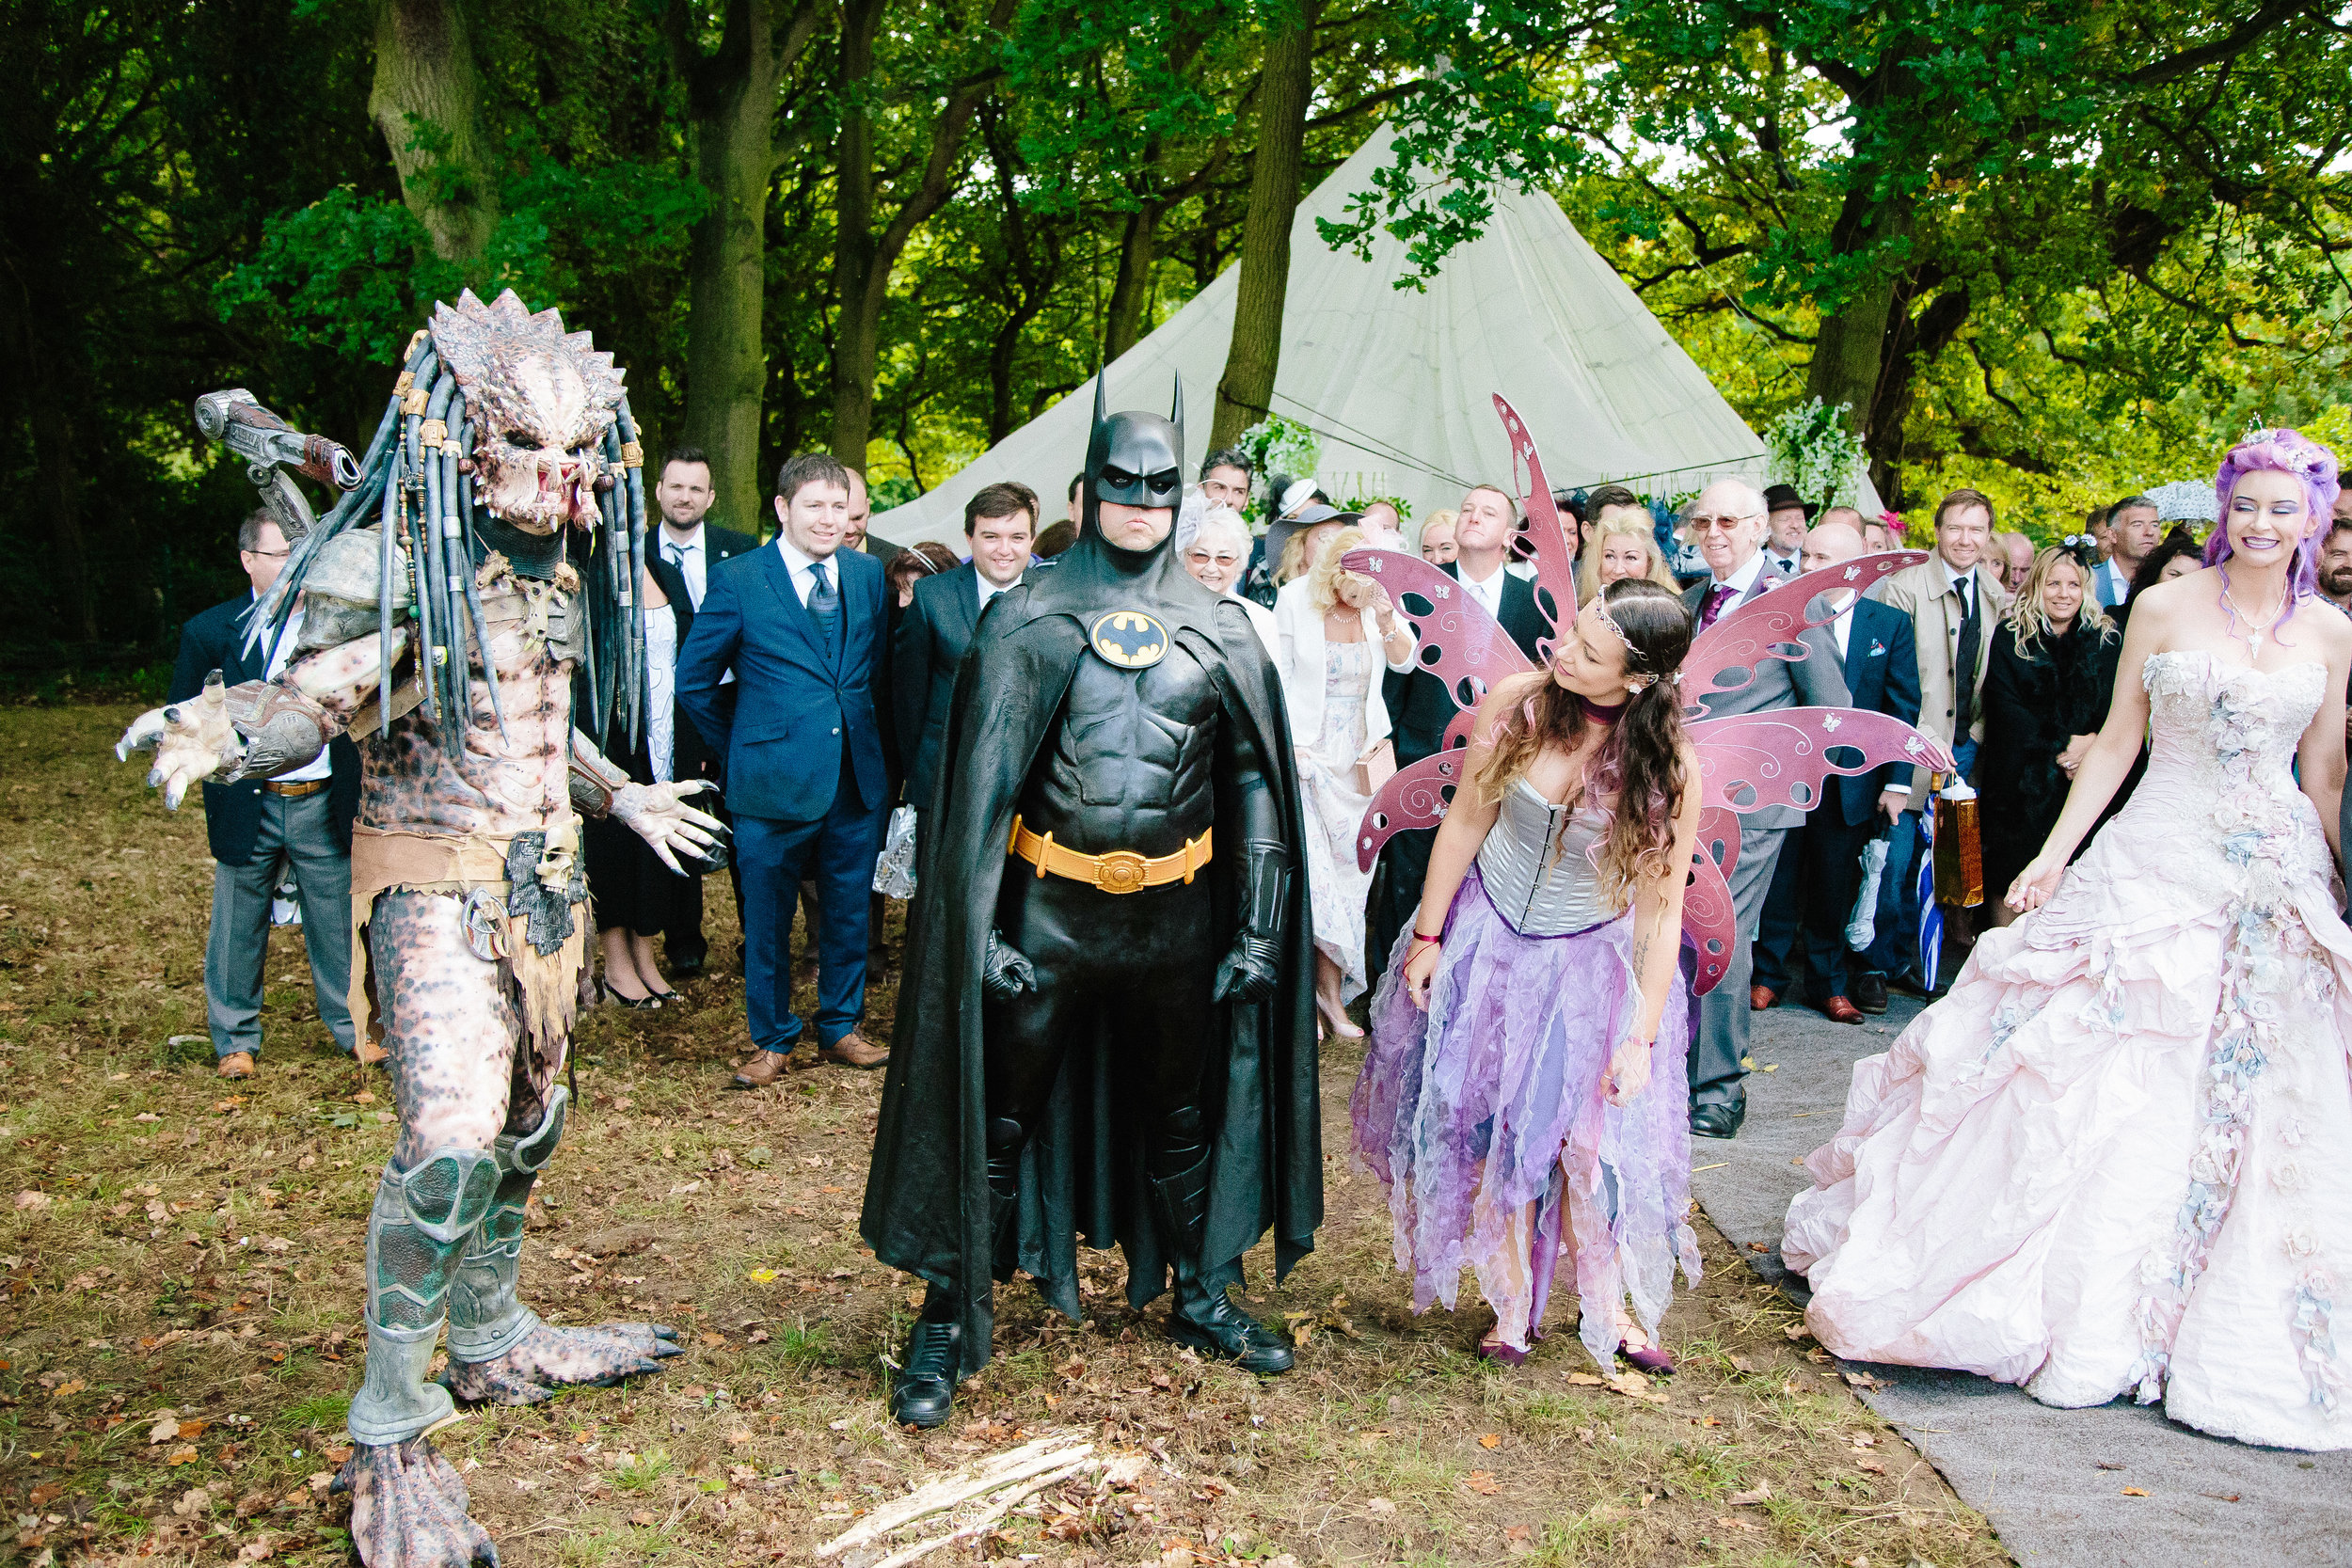 ceremony-bride-essex-movie-theme-wedding-batman-1